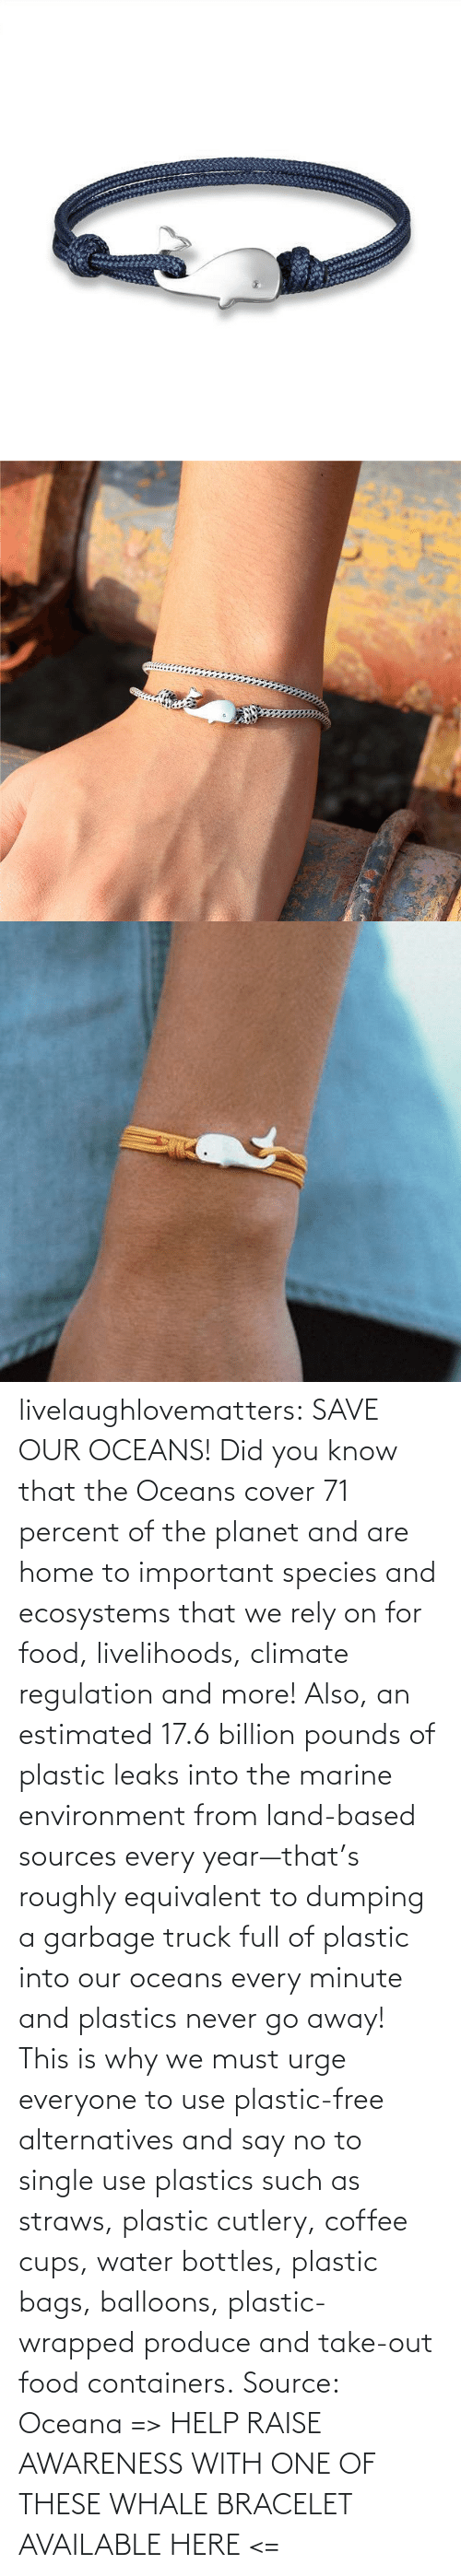 Food, Gif, and Tumblr: livelaughlovematters: SAVE OUR OCEANS!  Did you know that theOceans cover 71 percent of the planet and are home to important species and ecosystems that we rely on for food, livelihoods, climate regulation and more! Also, an estimated 17.6 billion pounds of plastic leaks into the marine environment from land-based sources every year—that's roughly equivalent to dumping a garbage truck full of plastic into our oceans every minute and plastics never go away! This is why we must urge everyone to useplastic-free alternatives and say no to single use plastics such as straws, plastic cutlery, coffee cups, water bottles, plastic bags, balloons, plastic-wrapped produce and take-out food containers. Source: Oceana => HELP RAISE AWARENESS WITH ONE OF THESE WHALE BRACELET AVAILABLE HERE <=